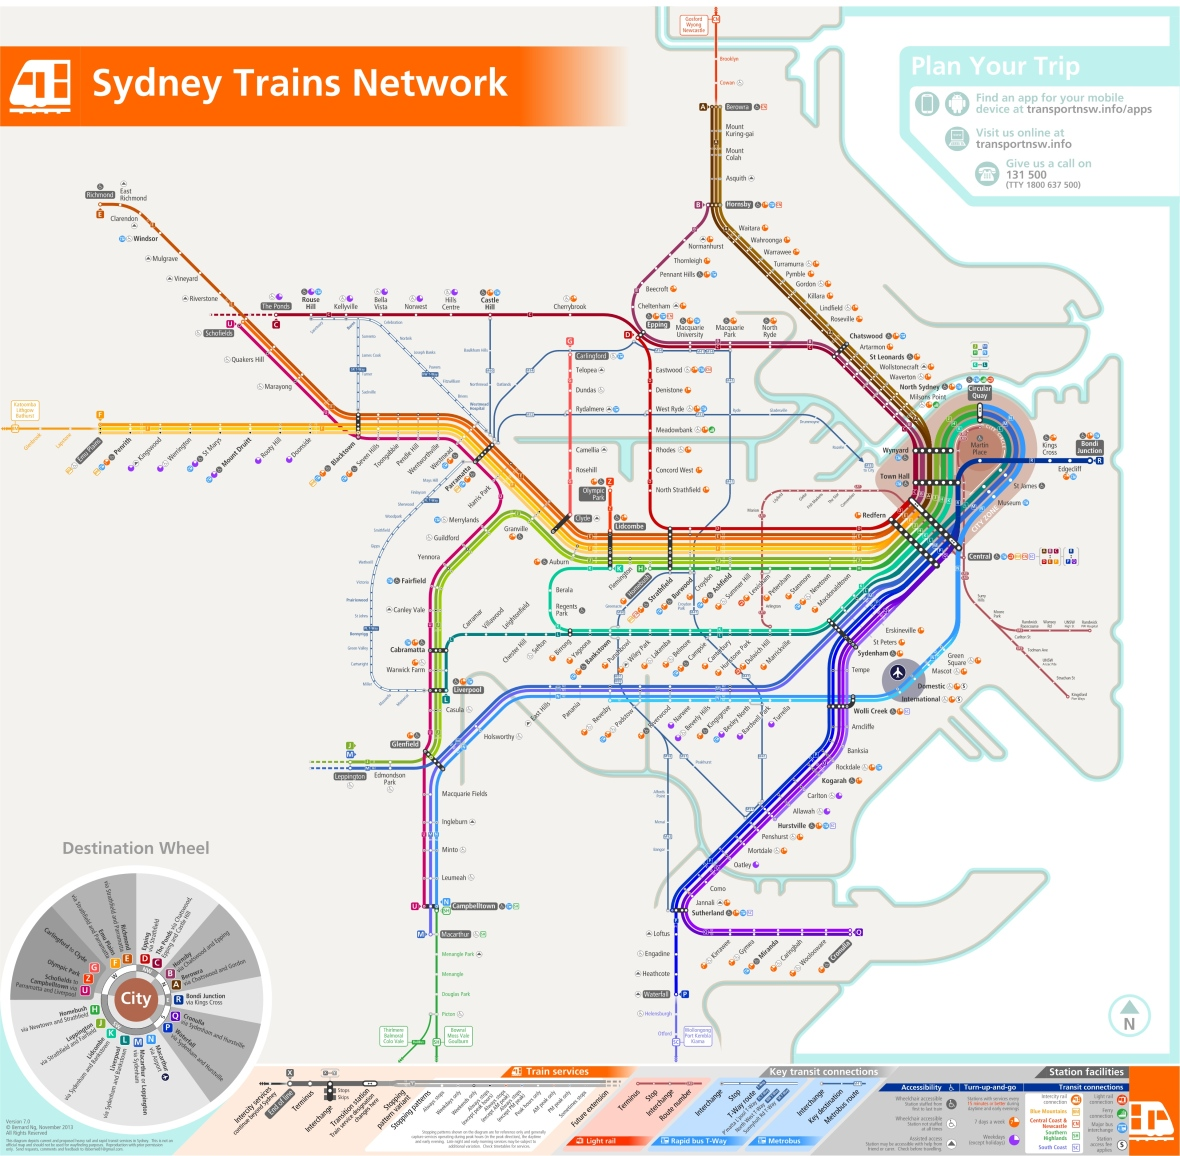 sydney-trains-network-v7-1